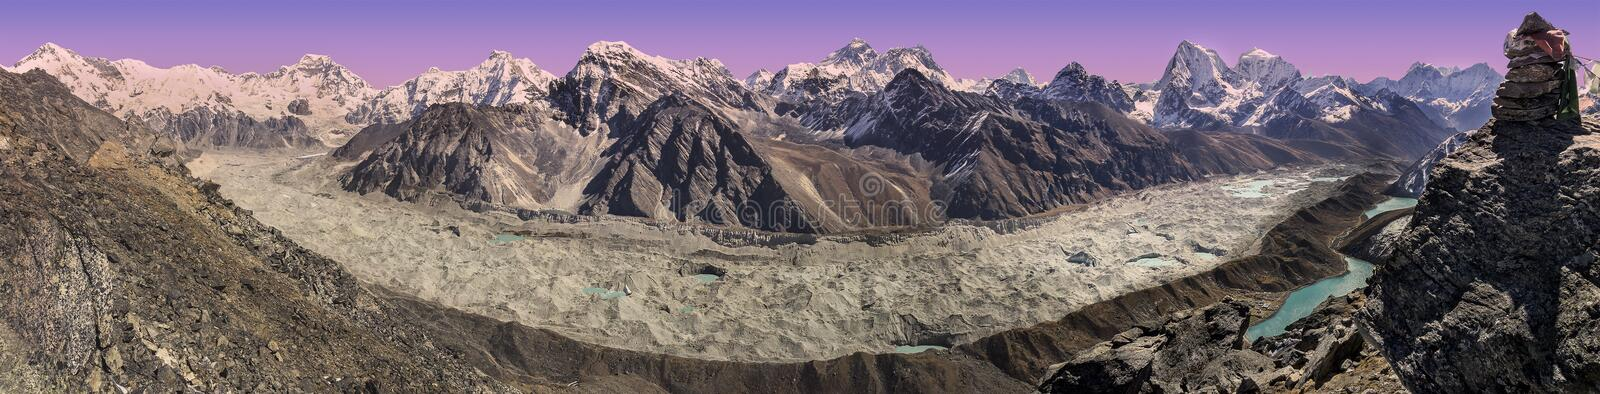 Panorama van zonsondergang over Everest-Bergketen, Nepal royalty-vrije stock foto